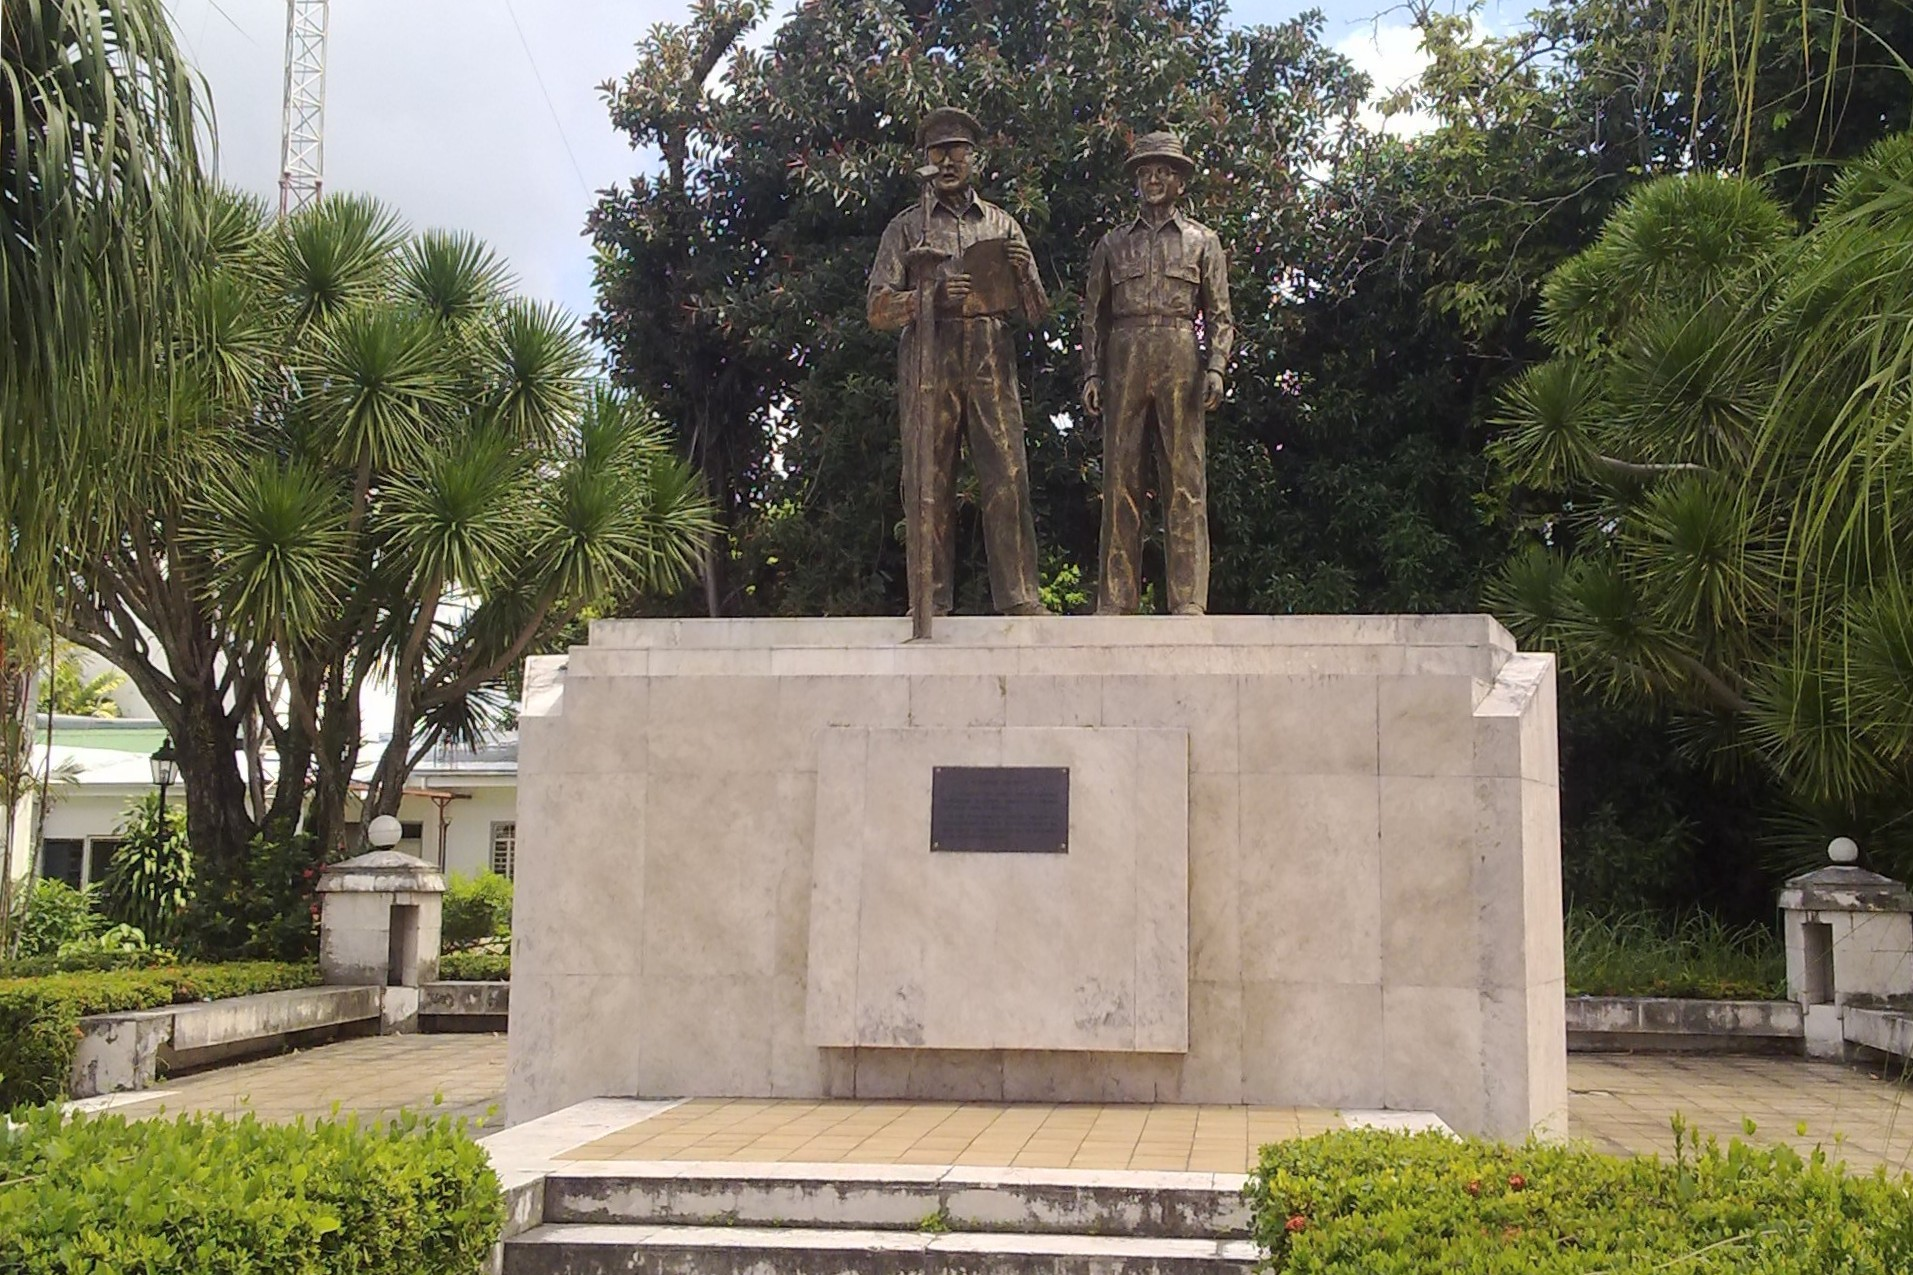 MacArthur and Osmeña Statues